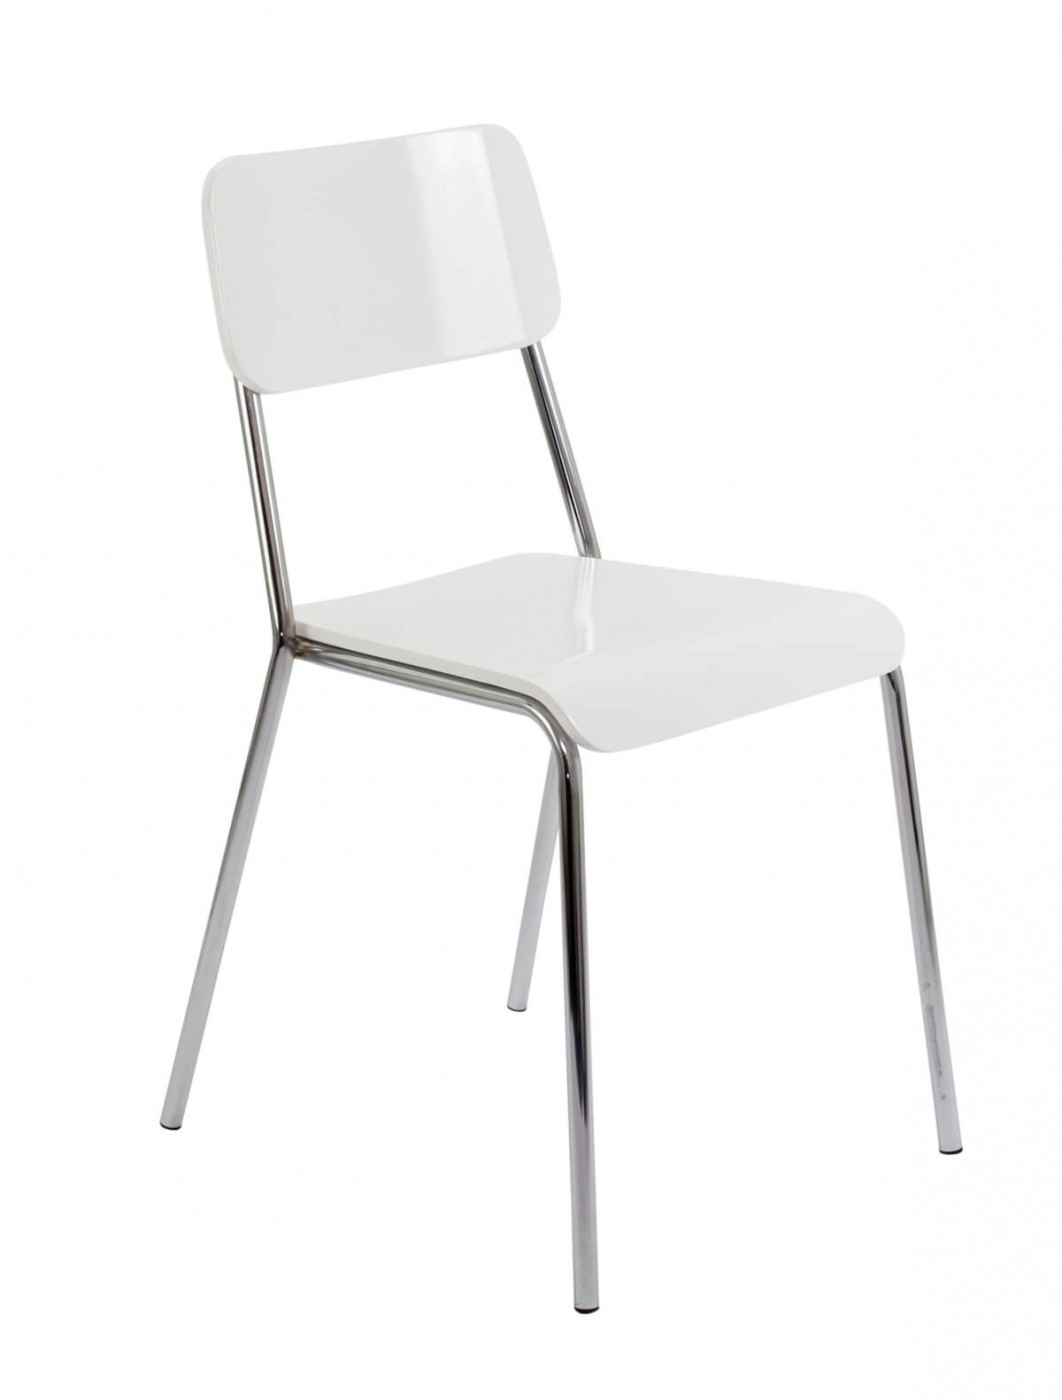 White Bistro Chairs Meeting Chair Reef Bistro Chairs Ch0671wh Bistro Chair